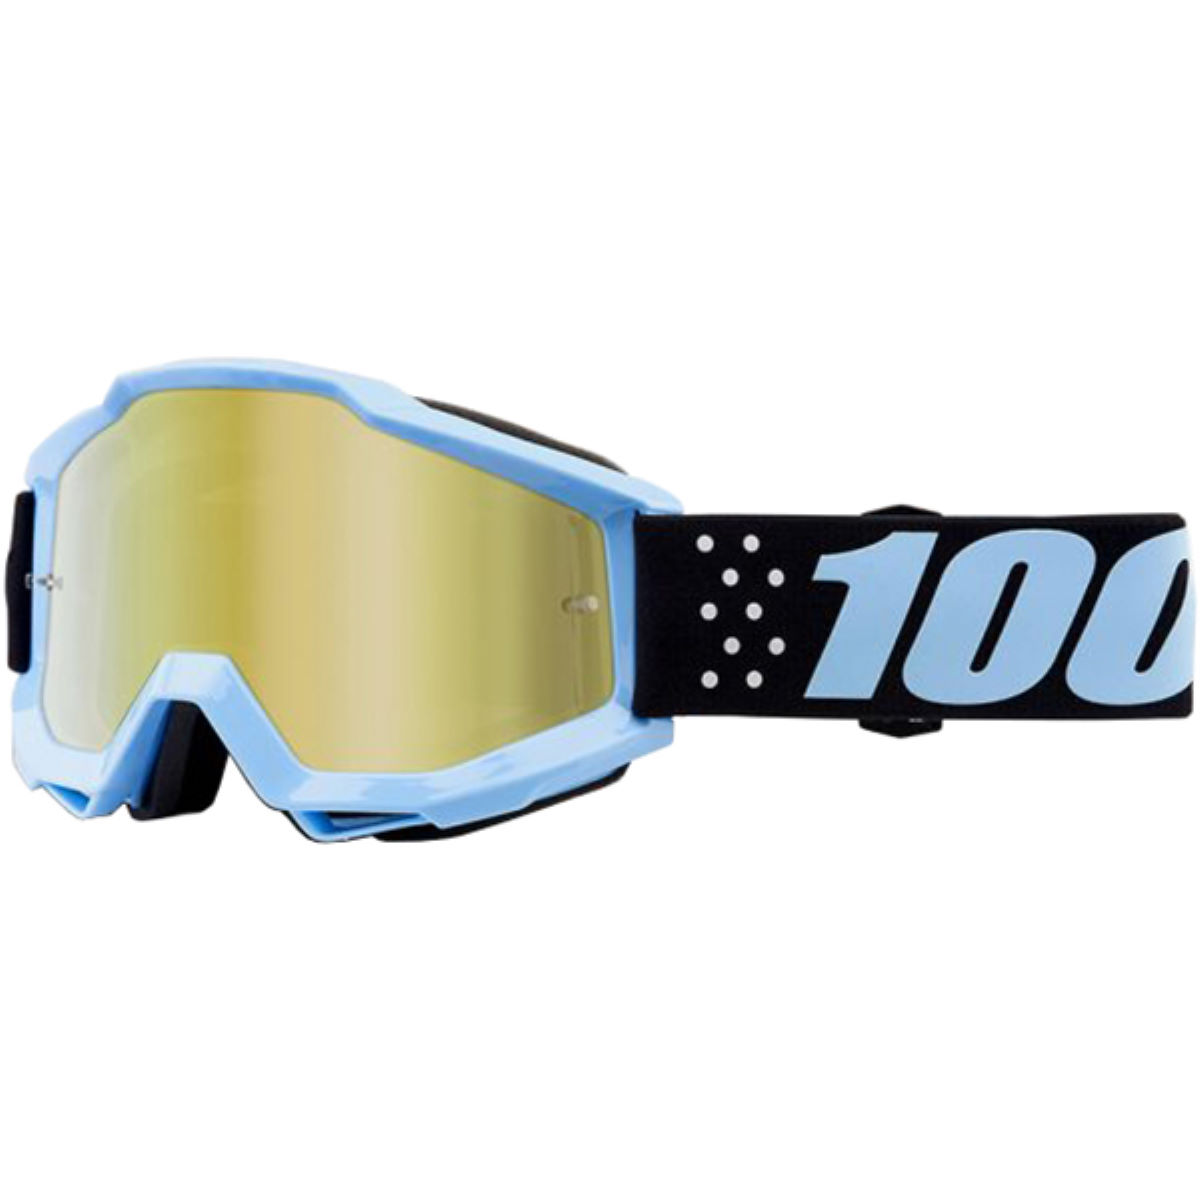 100% Accuri Youth Goggles Mirror Lens   Cycling Goggles